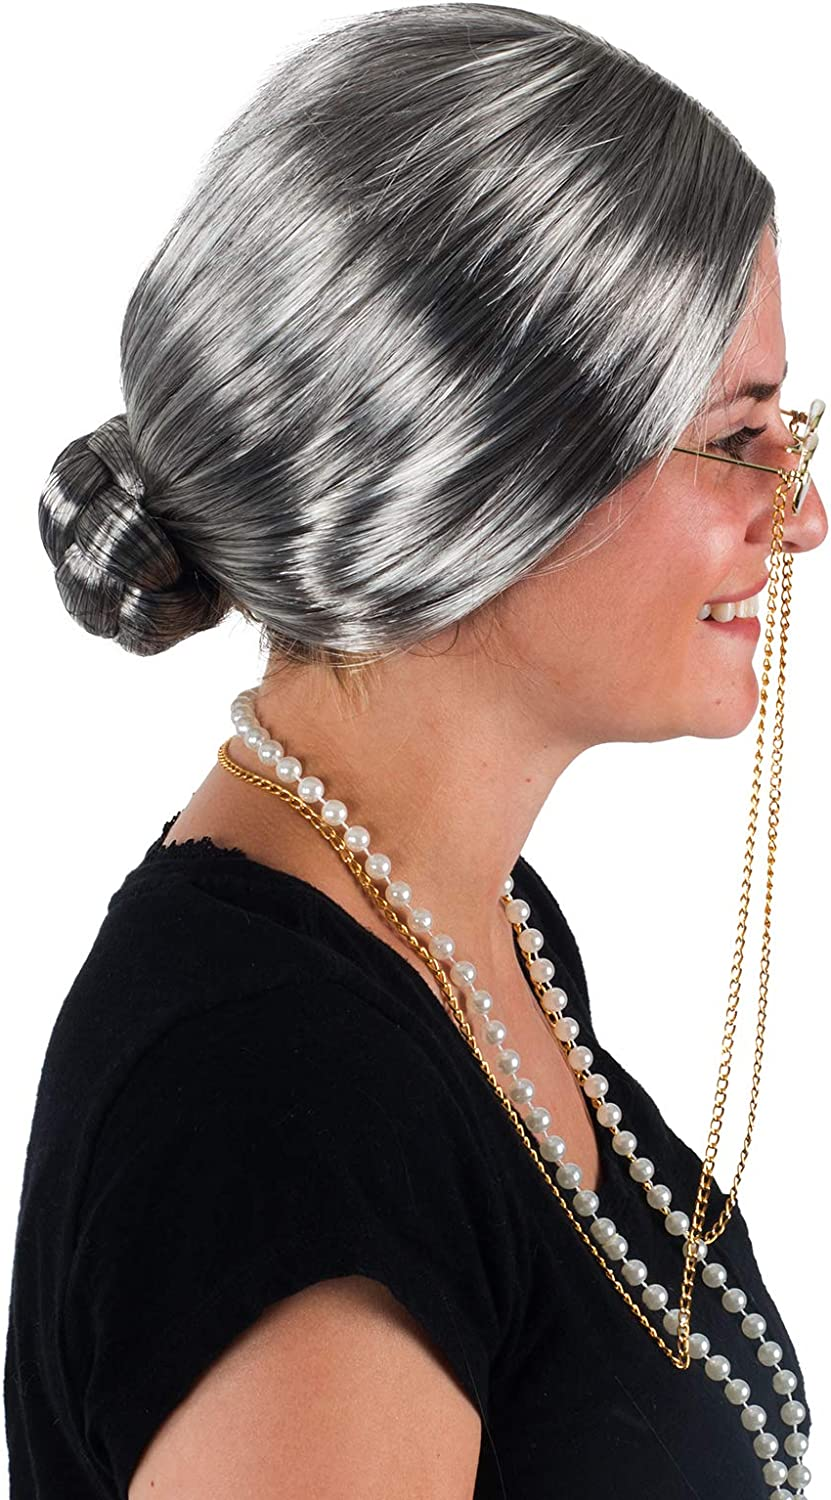 Granny Wig 4 Pc Set Old Lady Accessories Grey Granny Glasses Grandma Dress Up Tigerdoe Old Lady Costume with Cane